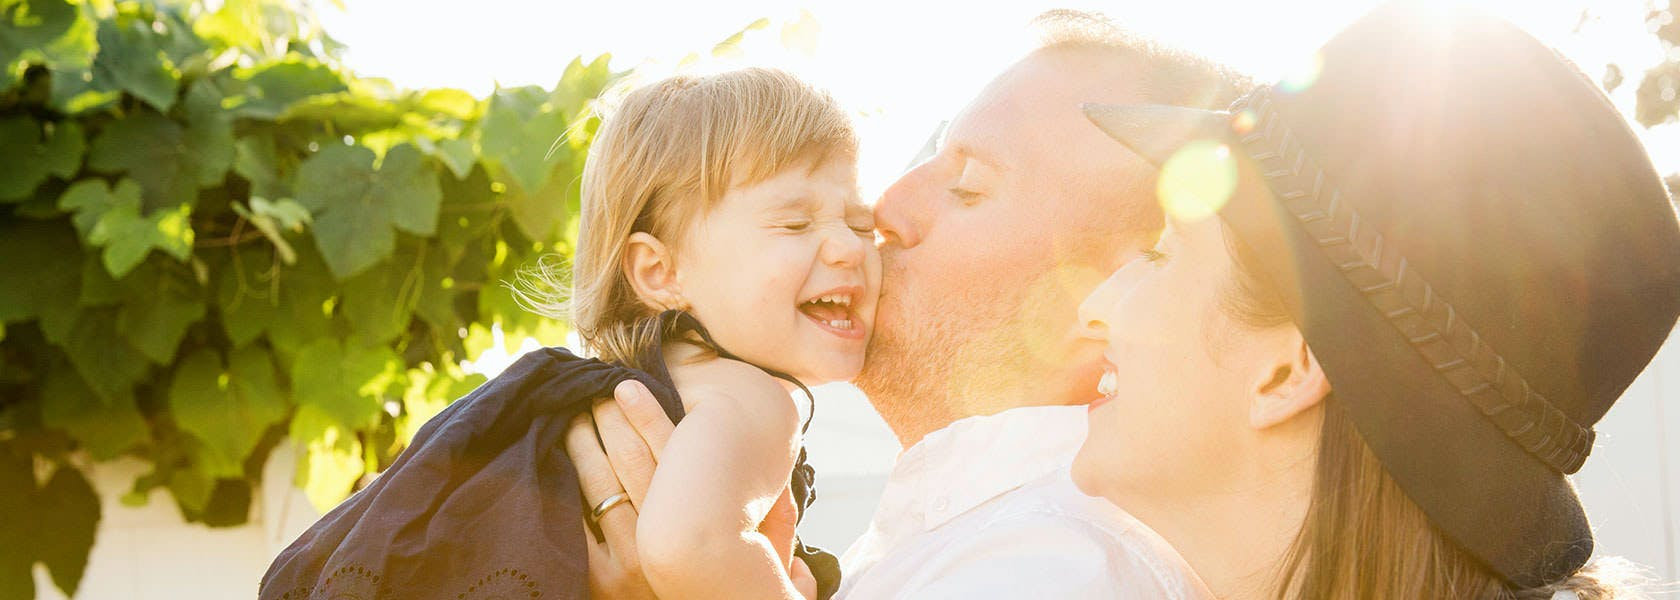 Father Kissing Toddler Daughter